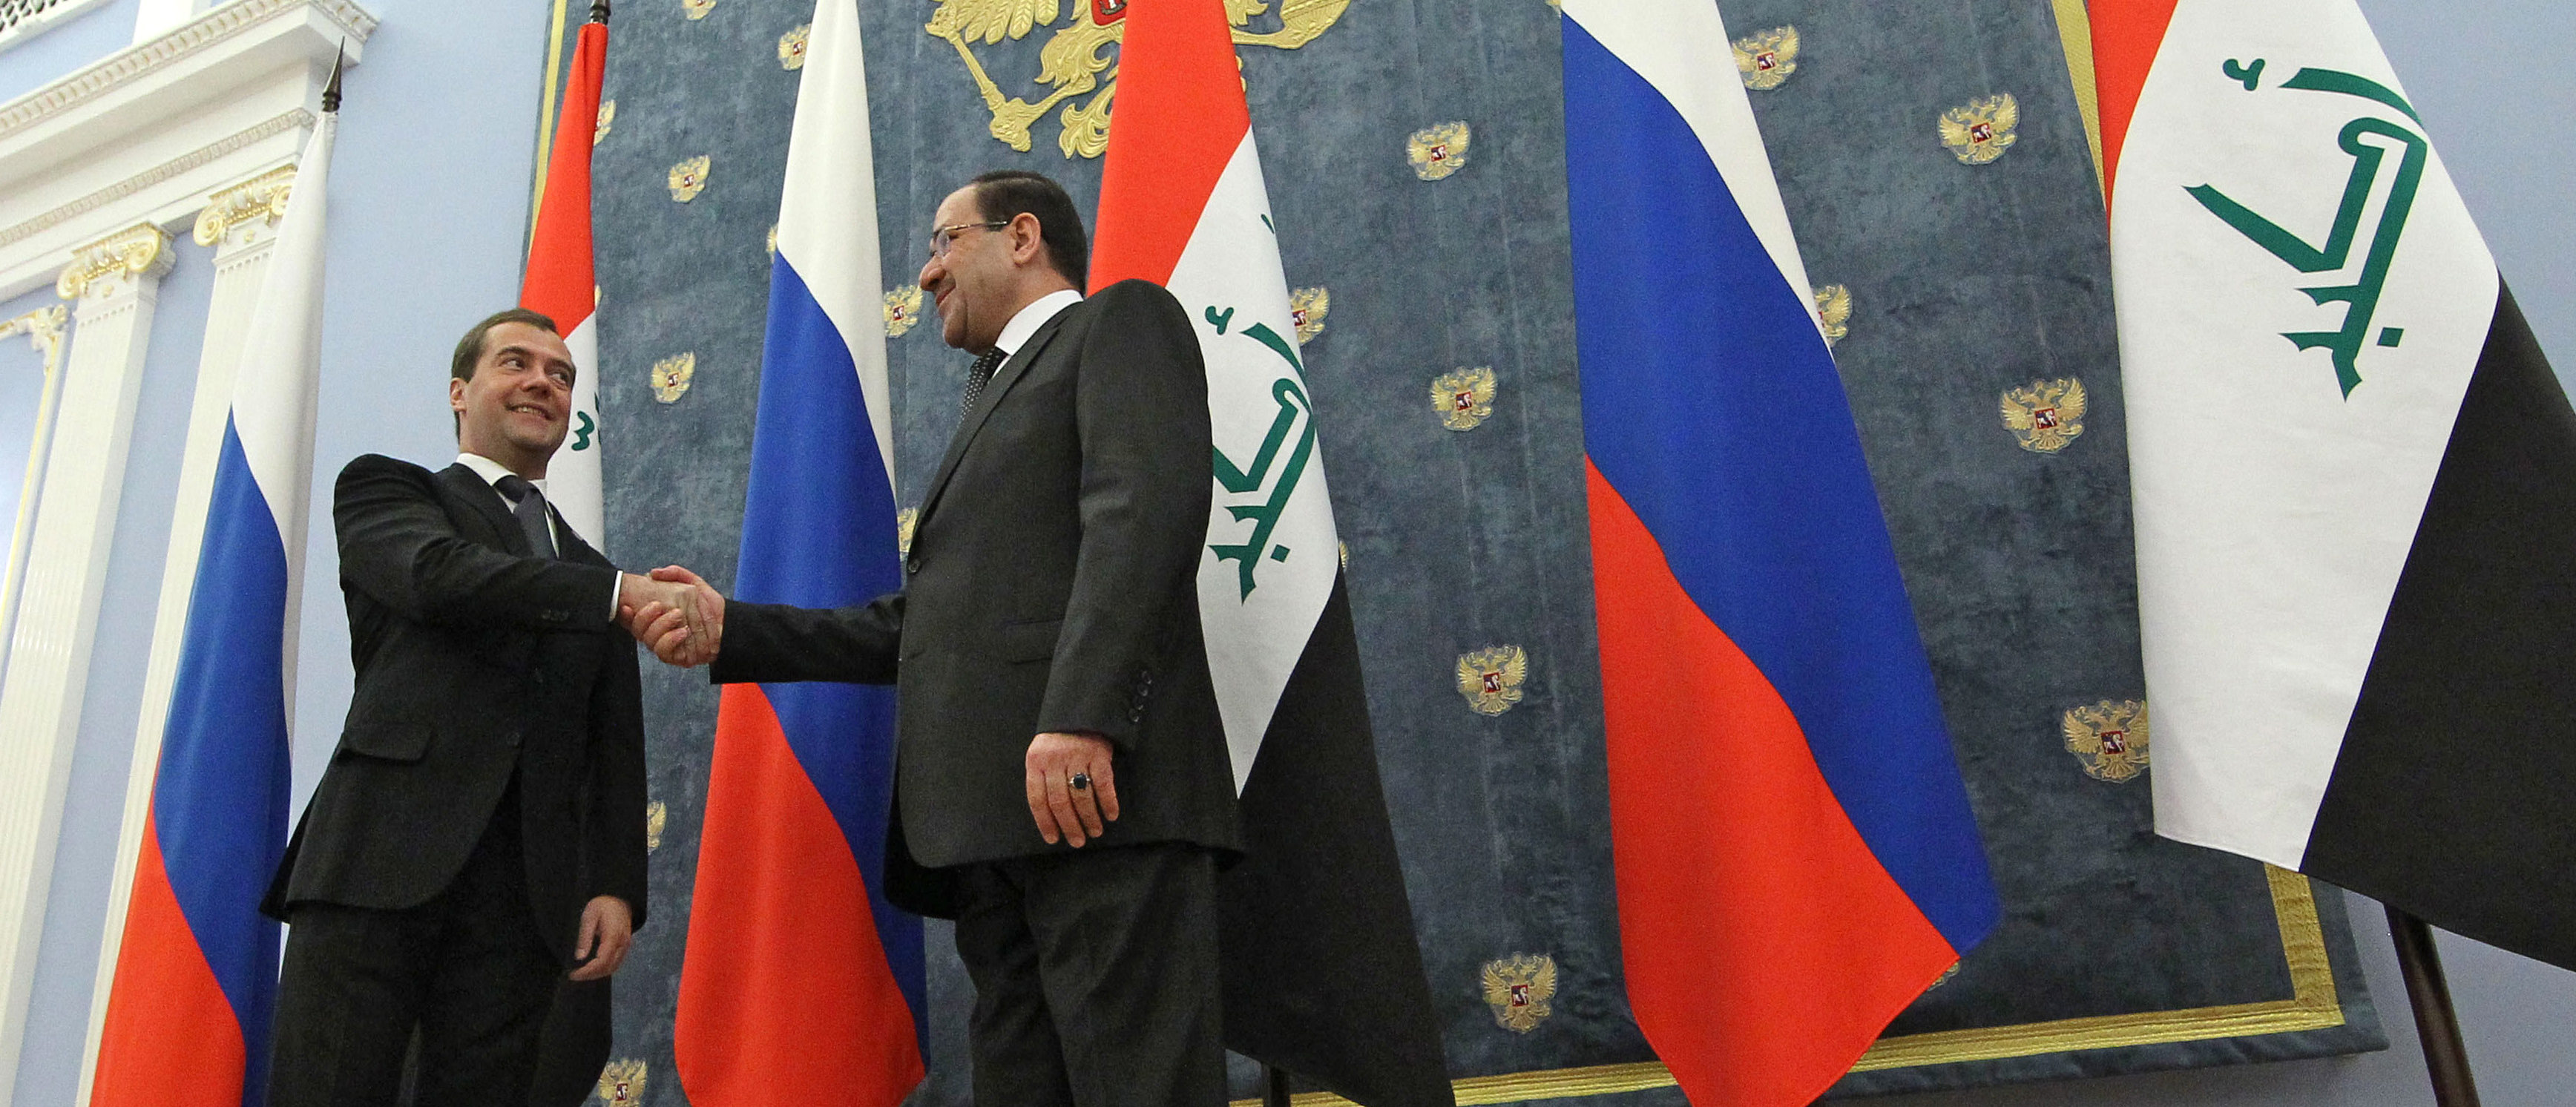 After Billions Spent Rebuilding Iraq, Russia And China Are Gaining Ground There